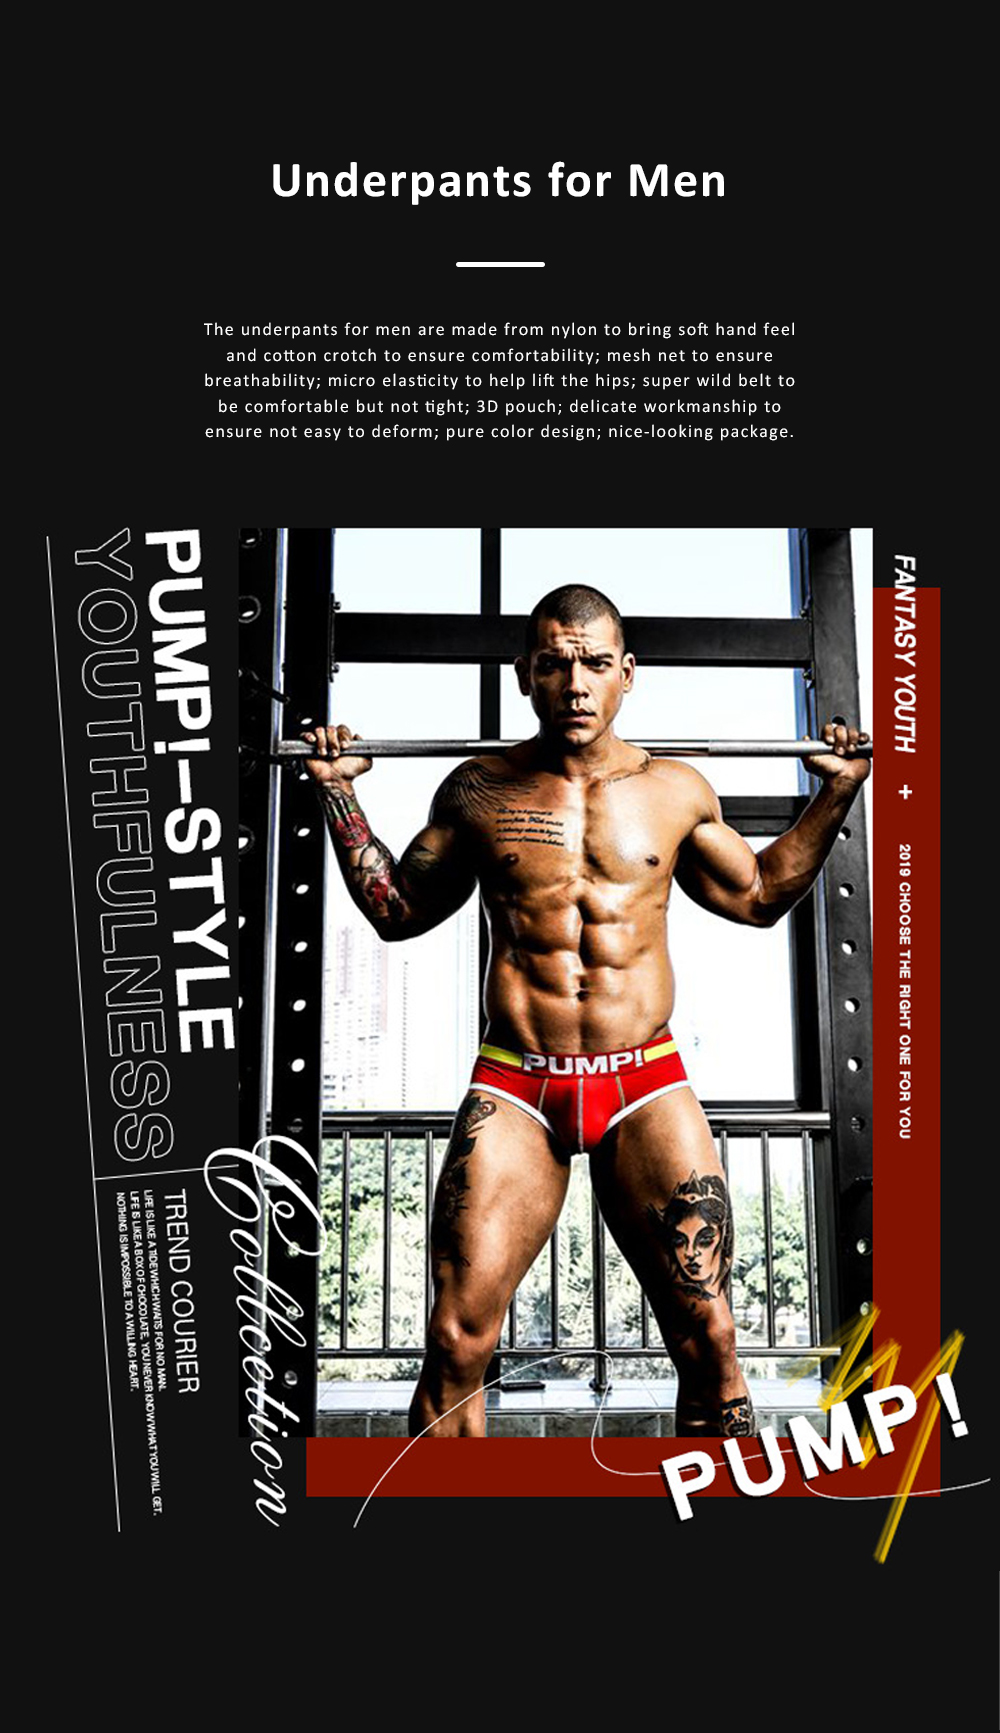 Mesh Breathable Underpants for Man's Daily Wear Sexy Briefs 100% Cotton Material Breathable briefs Underwear for Men 0